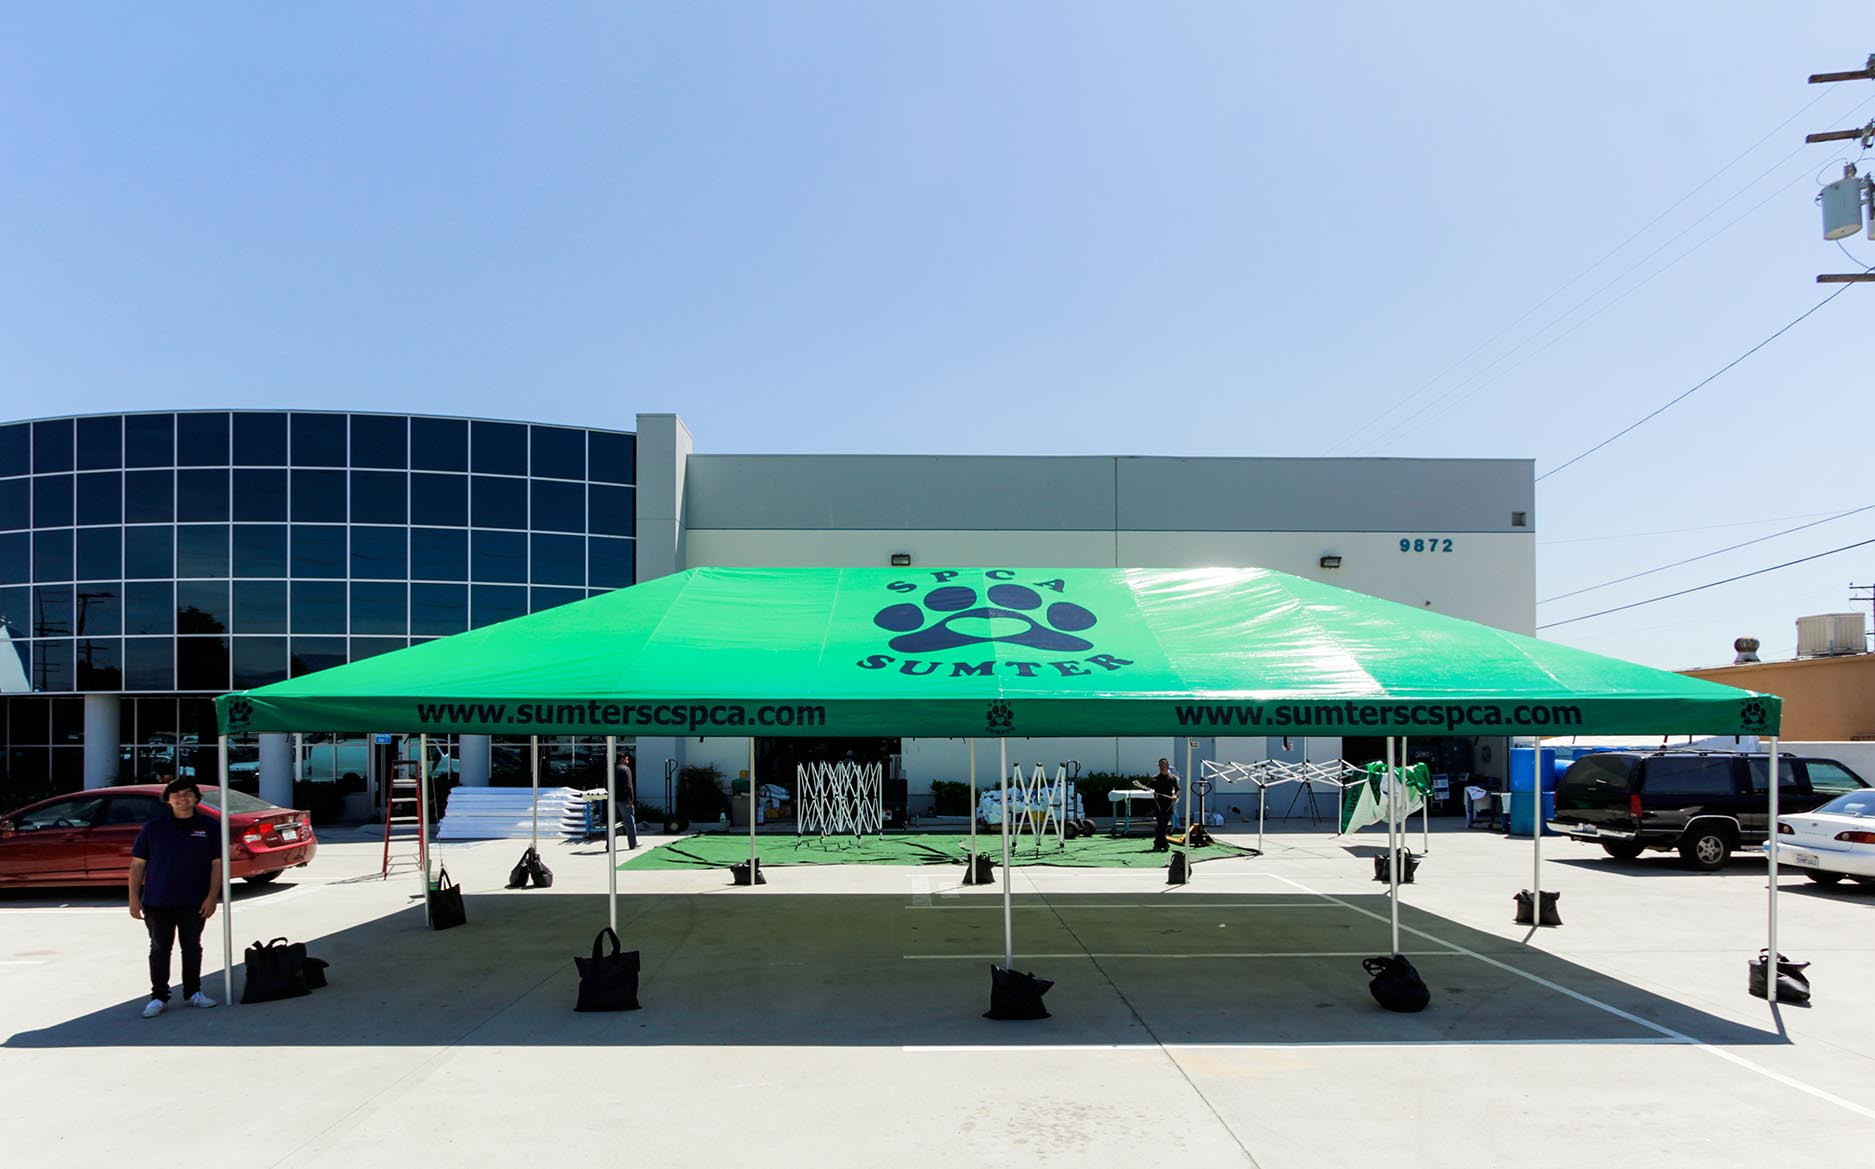 Sumpter SPCA Standard Frame Tent with green printing and a branded logo on the tent